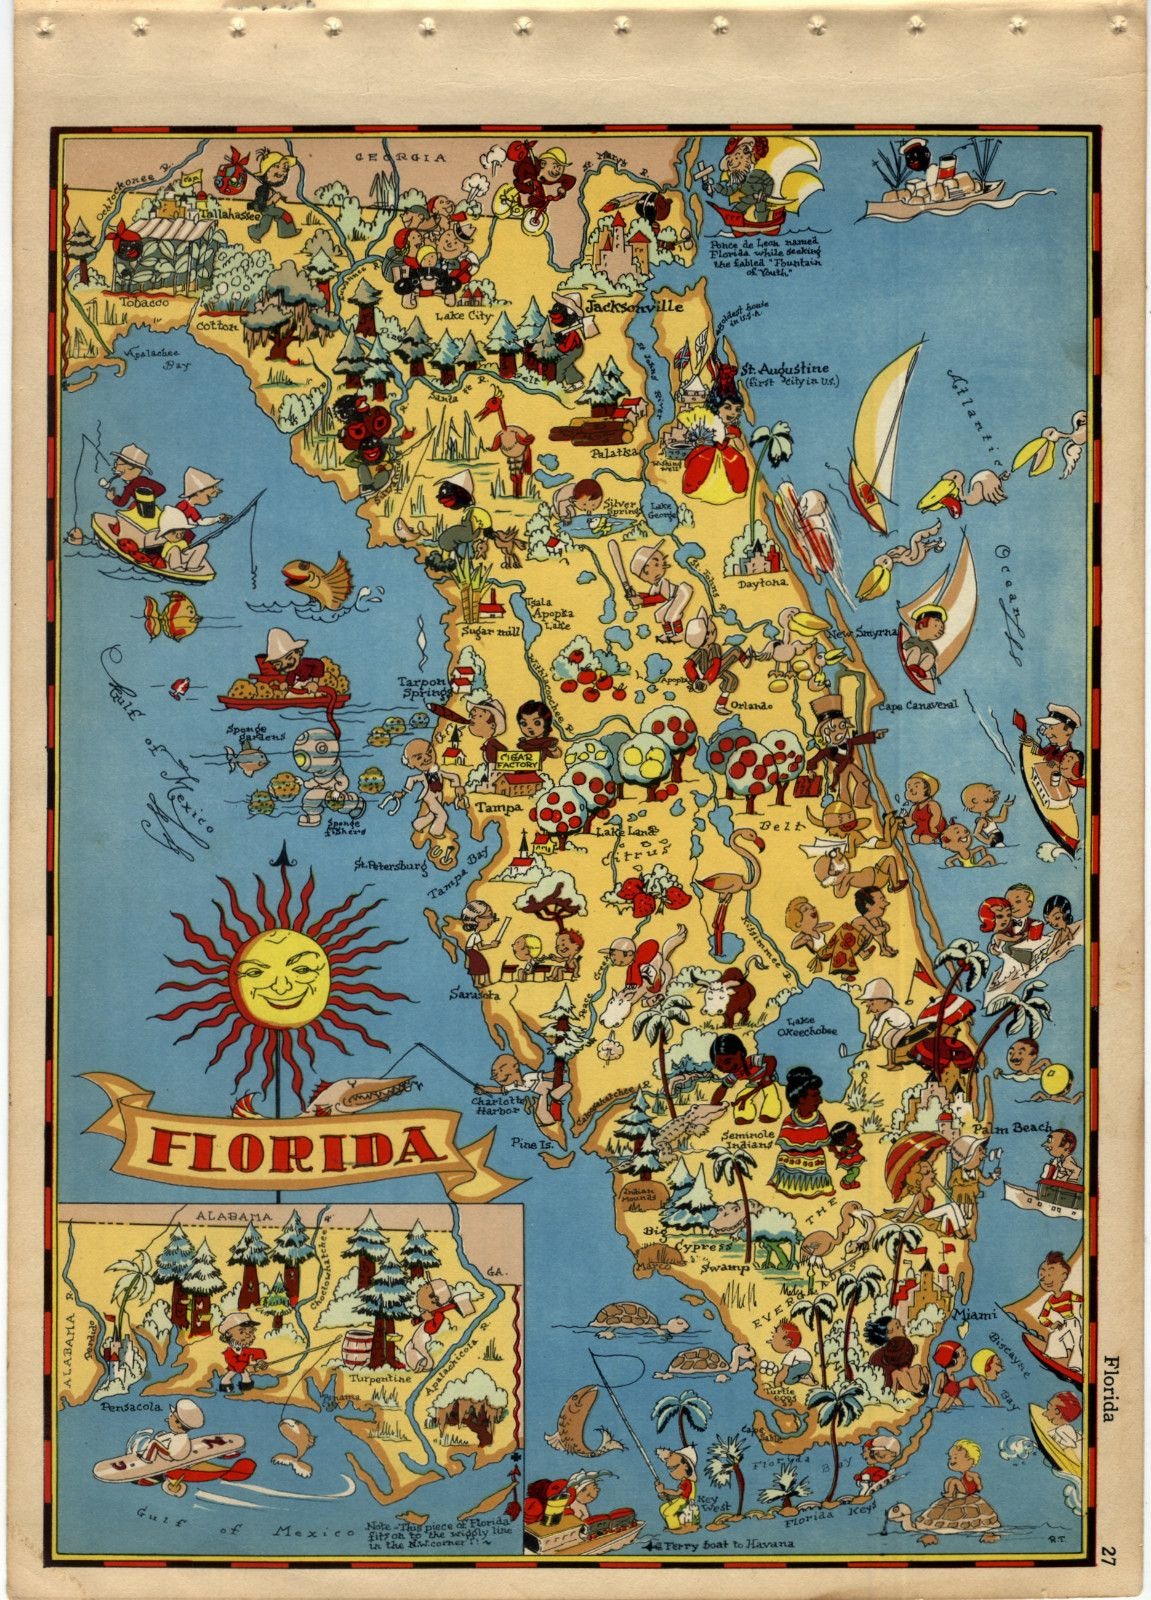 Vintage Florida Map Obsessed With Maps . In 2019